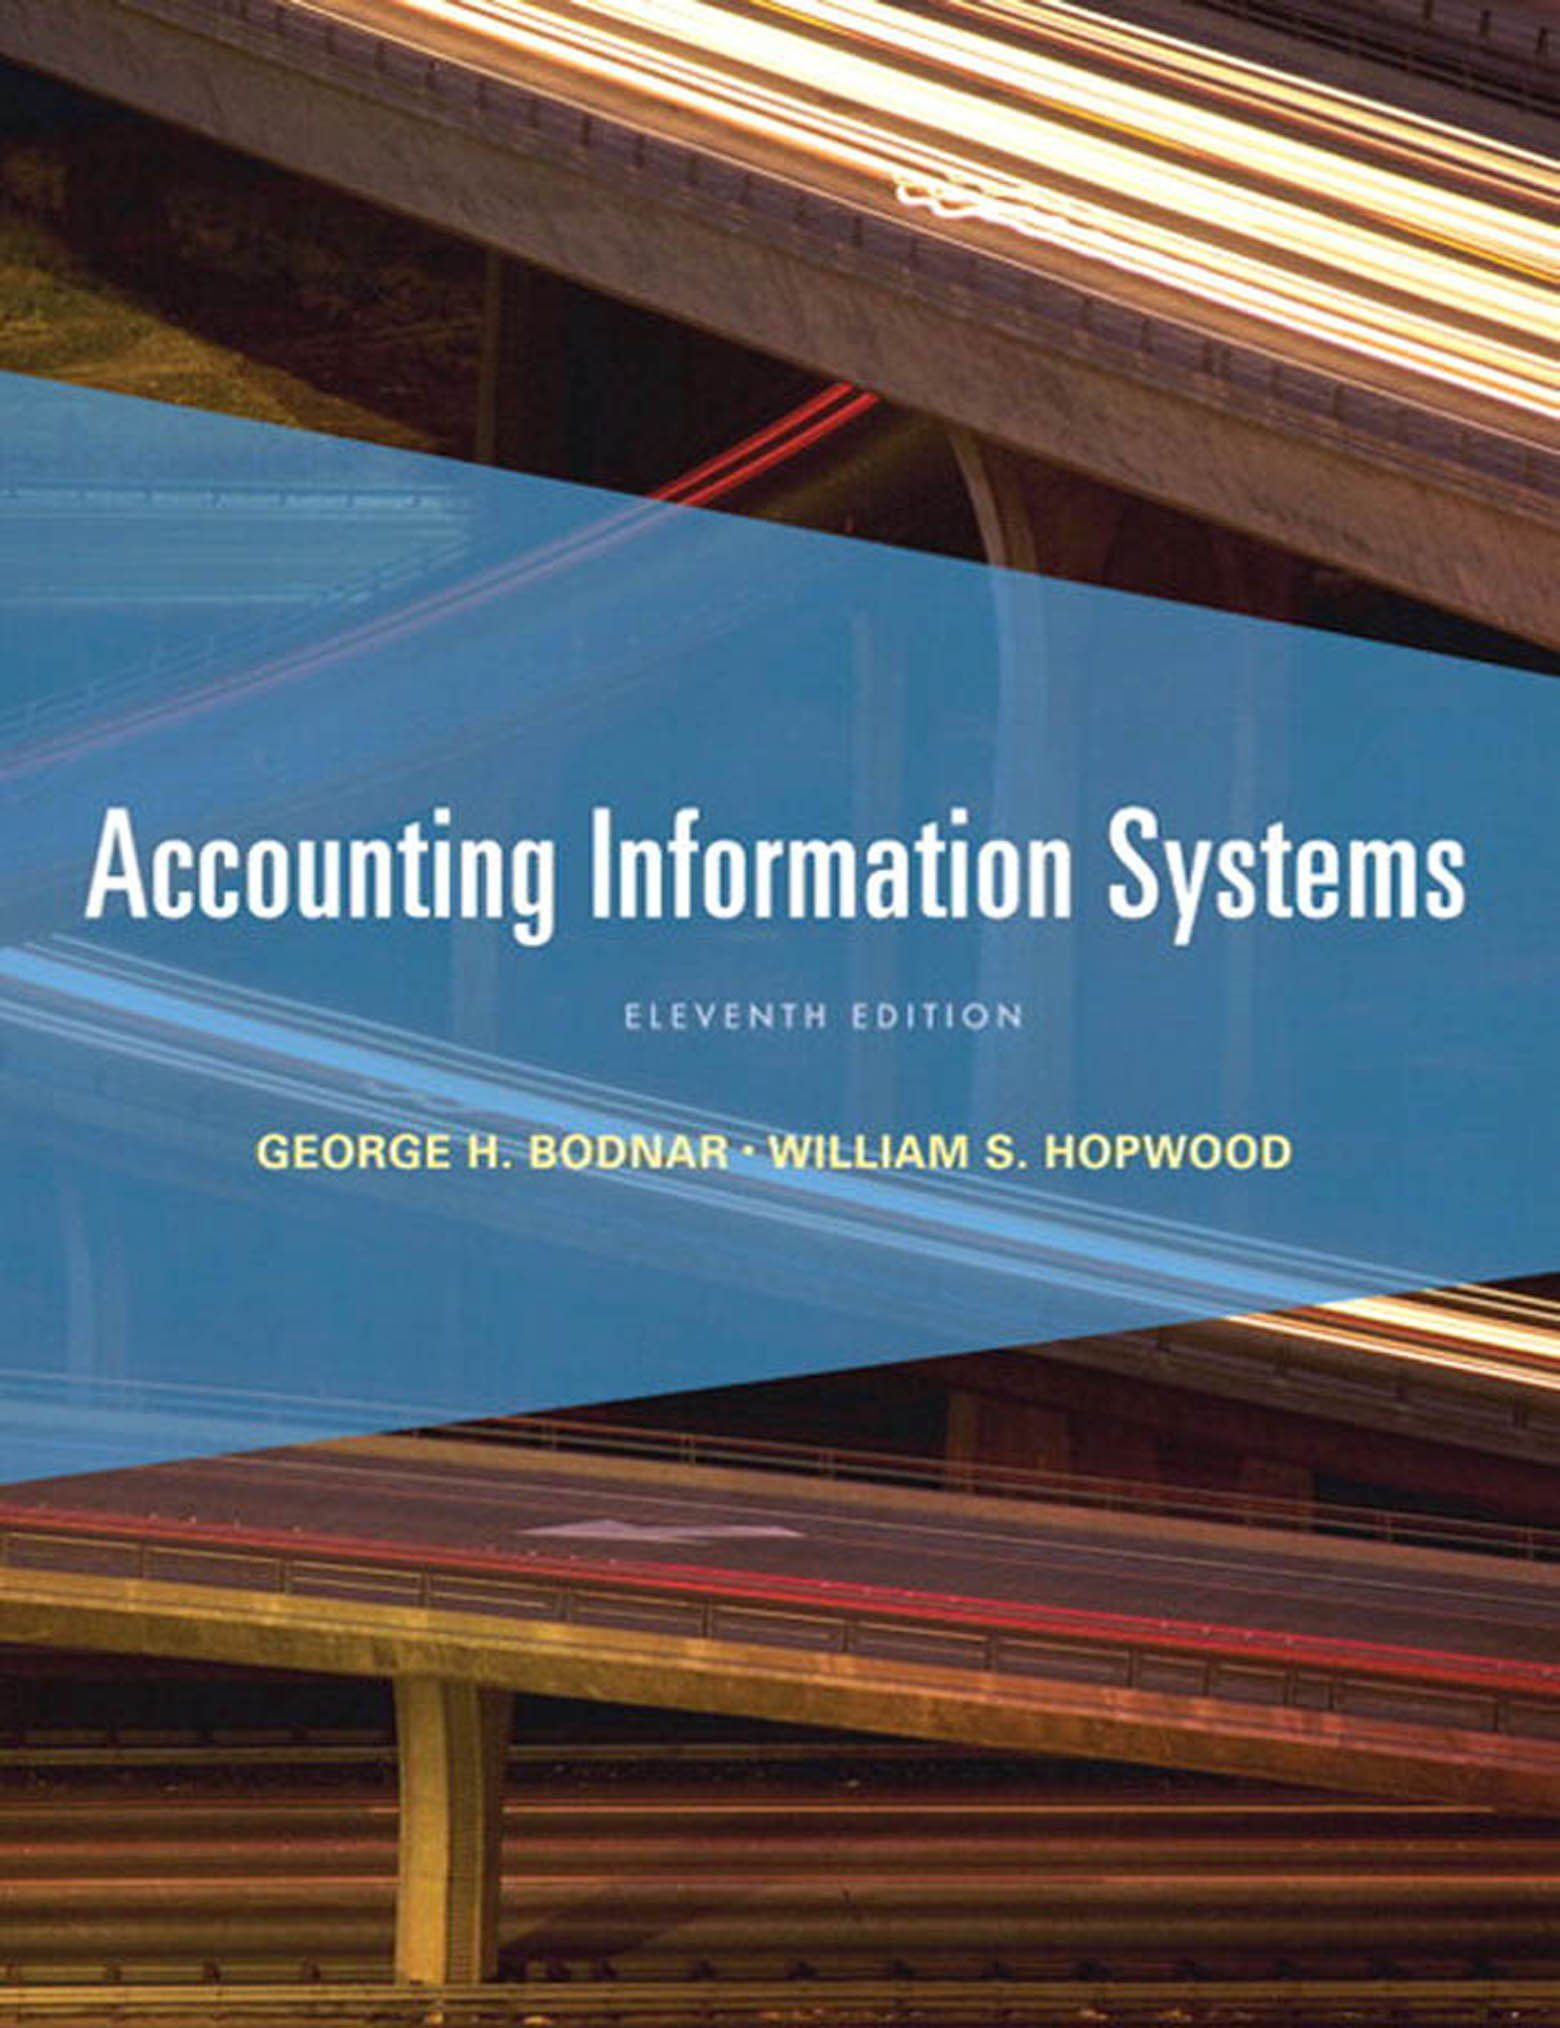 Accounting Information Systems 11th Edition by H